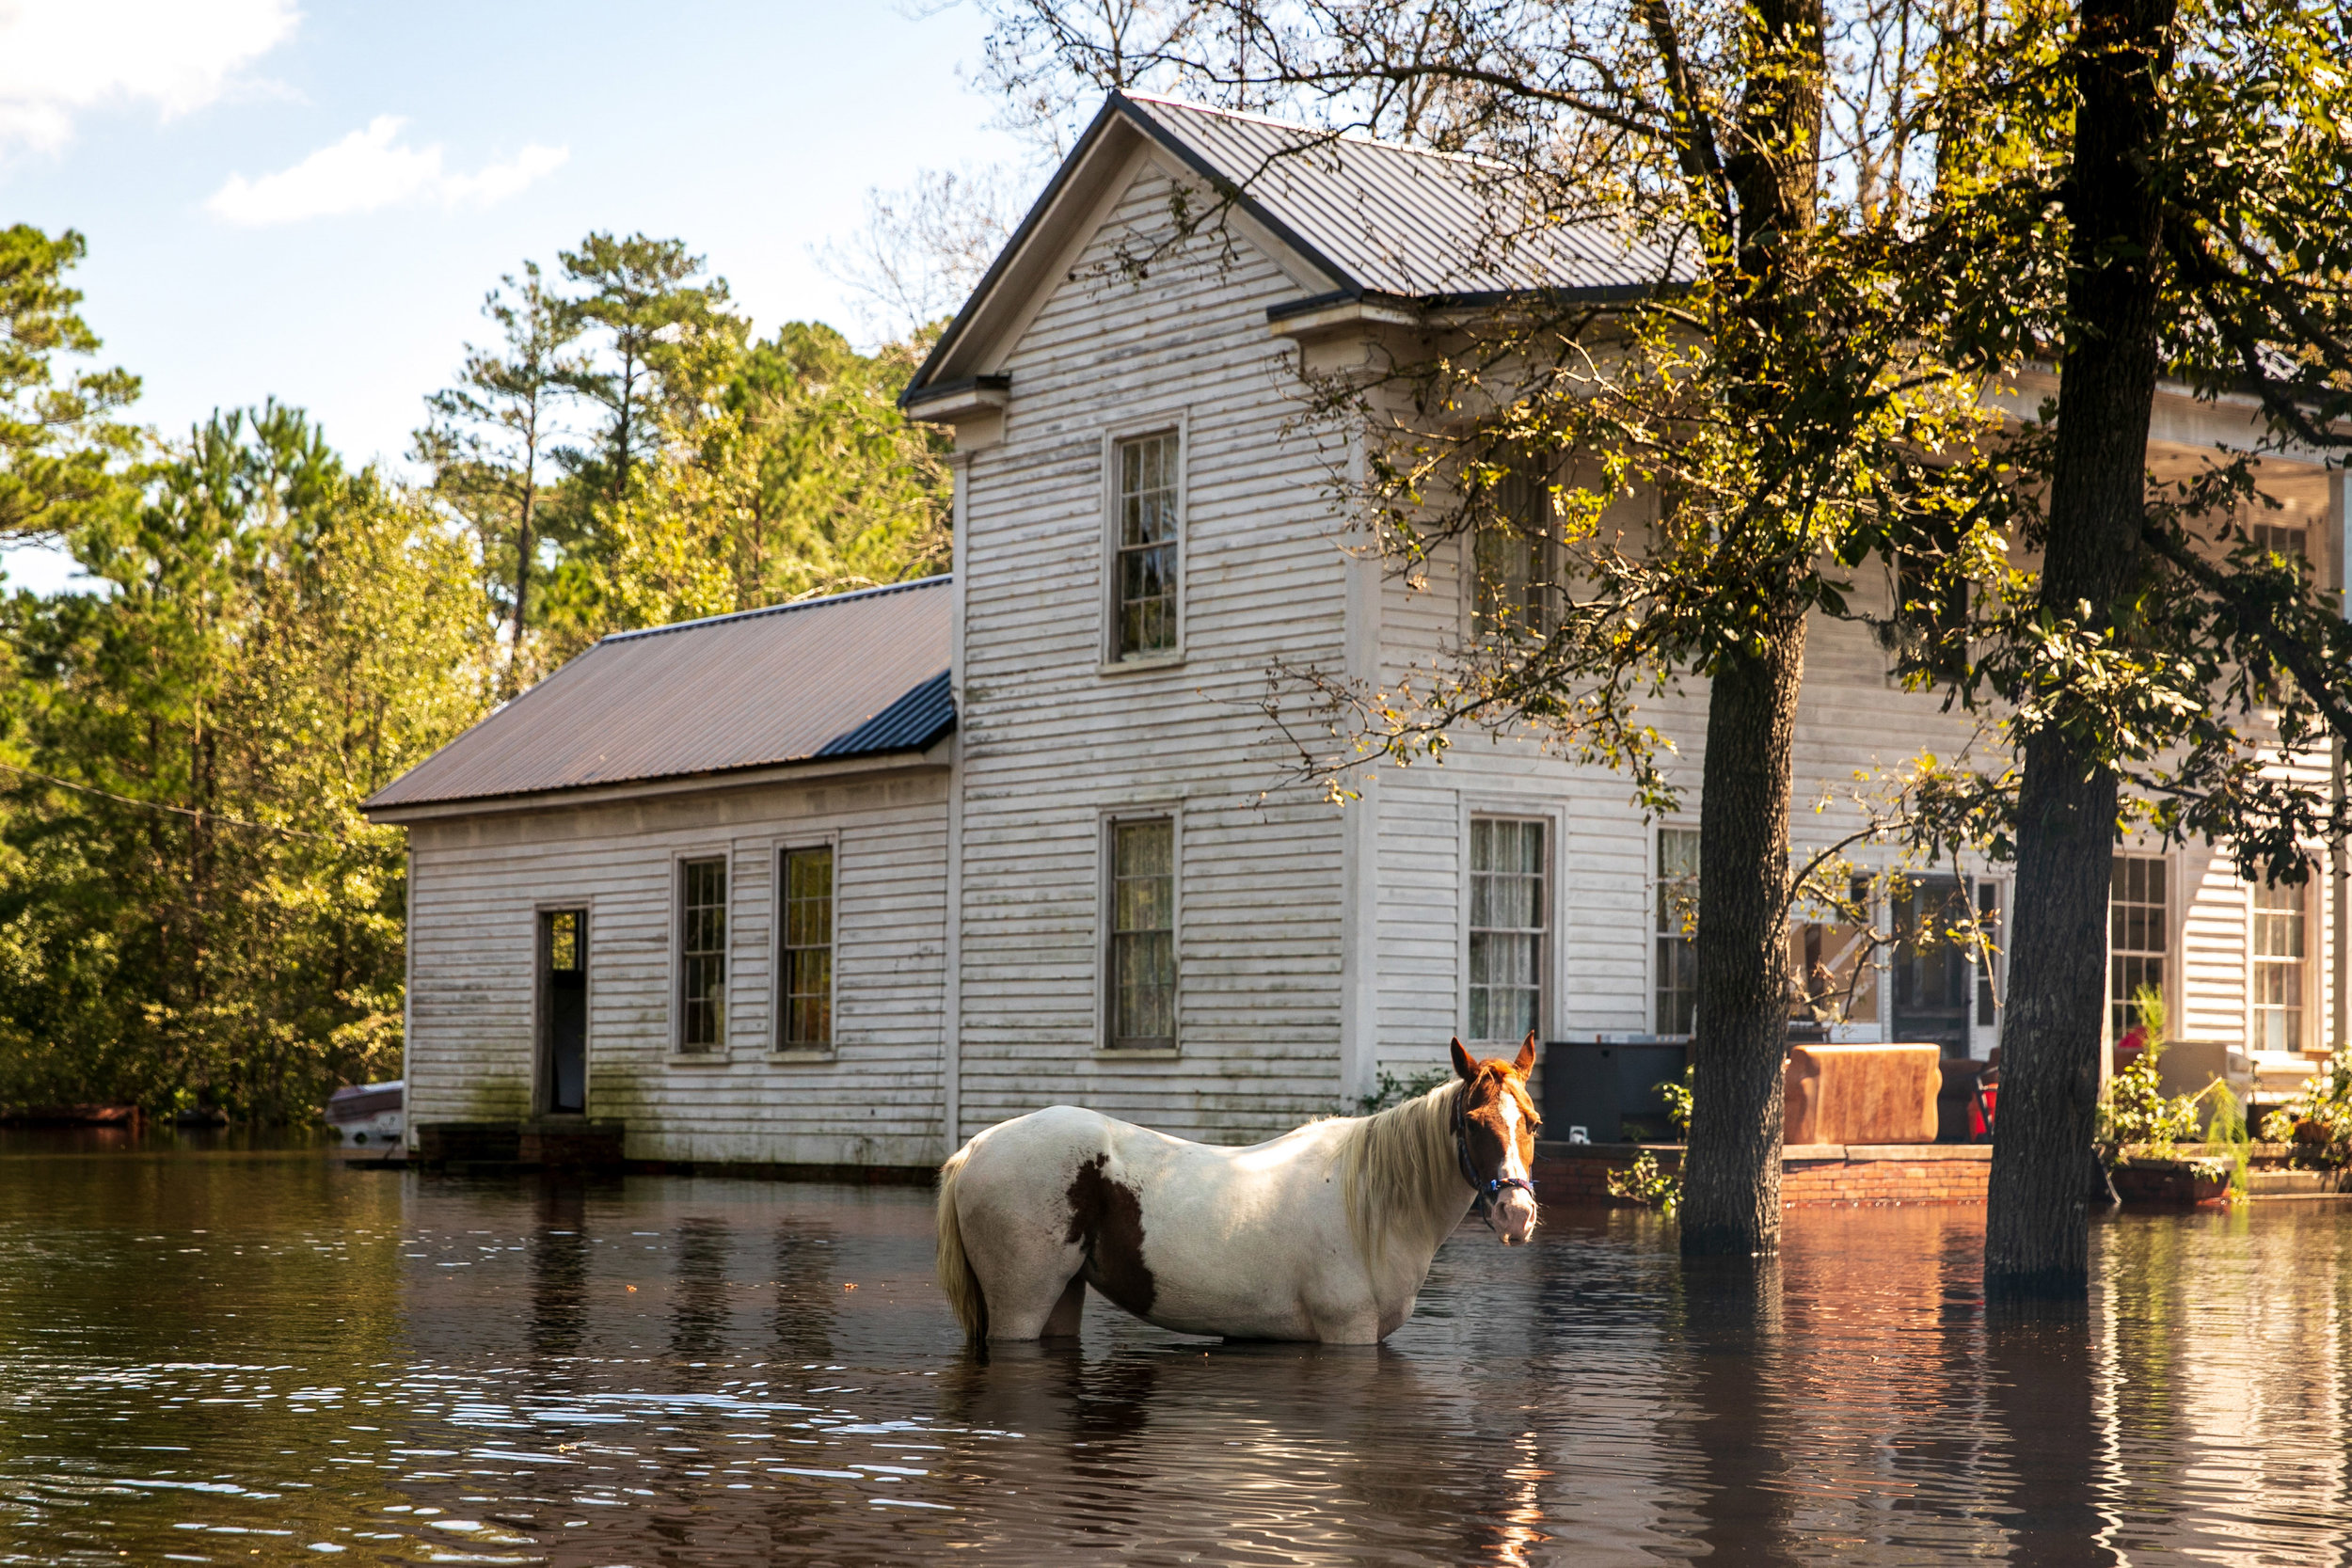 ILANA PANICH-LINSMAN  www.ilanapl.com  |  @ilanapl   Thomas and Autumn Brown try and bring a neighbor's horse, Lady, to higher ground in Ivanhoe, NC, USA in the aftermath of Hurricane Florence.  From The New York Times:    Submerged by Florence, North Carolina's Rural Towns Fight for Attention